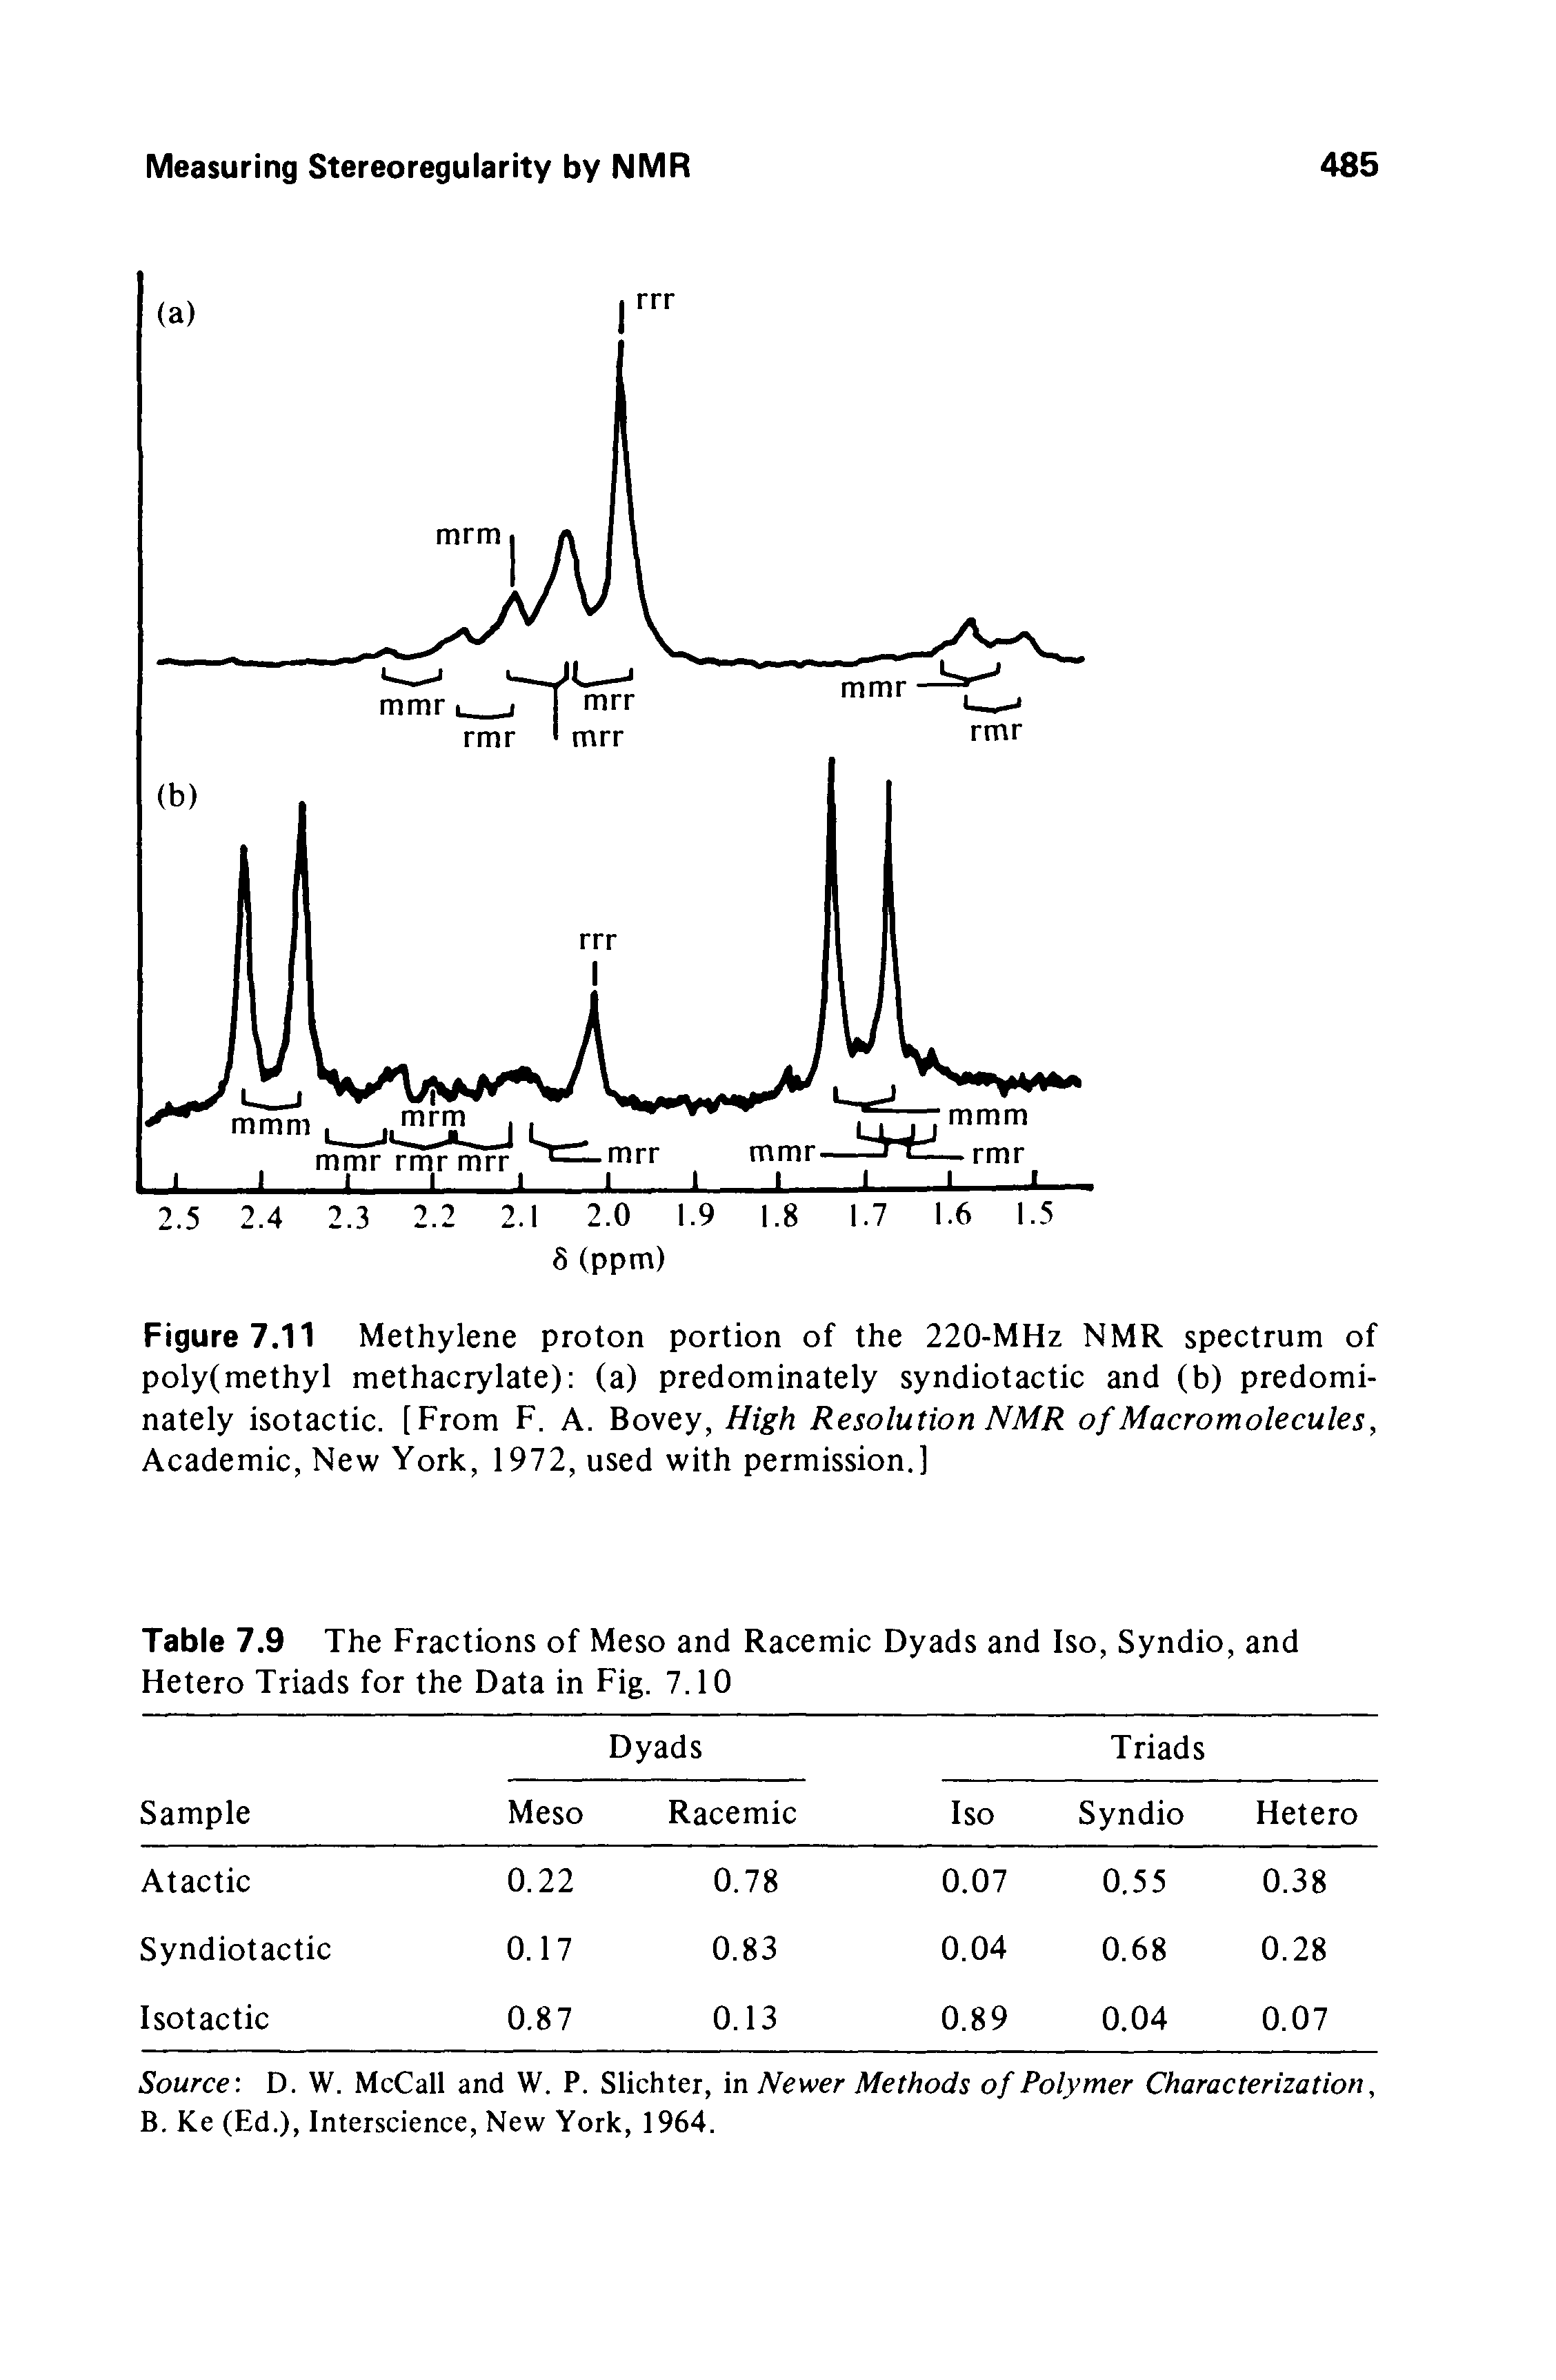 Figure 7.11 Methylene proton portion of the 220-MHz NMR spectrum of poly(methyl methacrylate) (a) predominately syndiotactic and (b) predominately isotactic. [From F. A. Bovey, High Resolution NMR of Macro molecules, Academic, New York, 1972, used with permission.]...